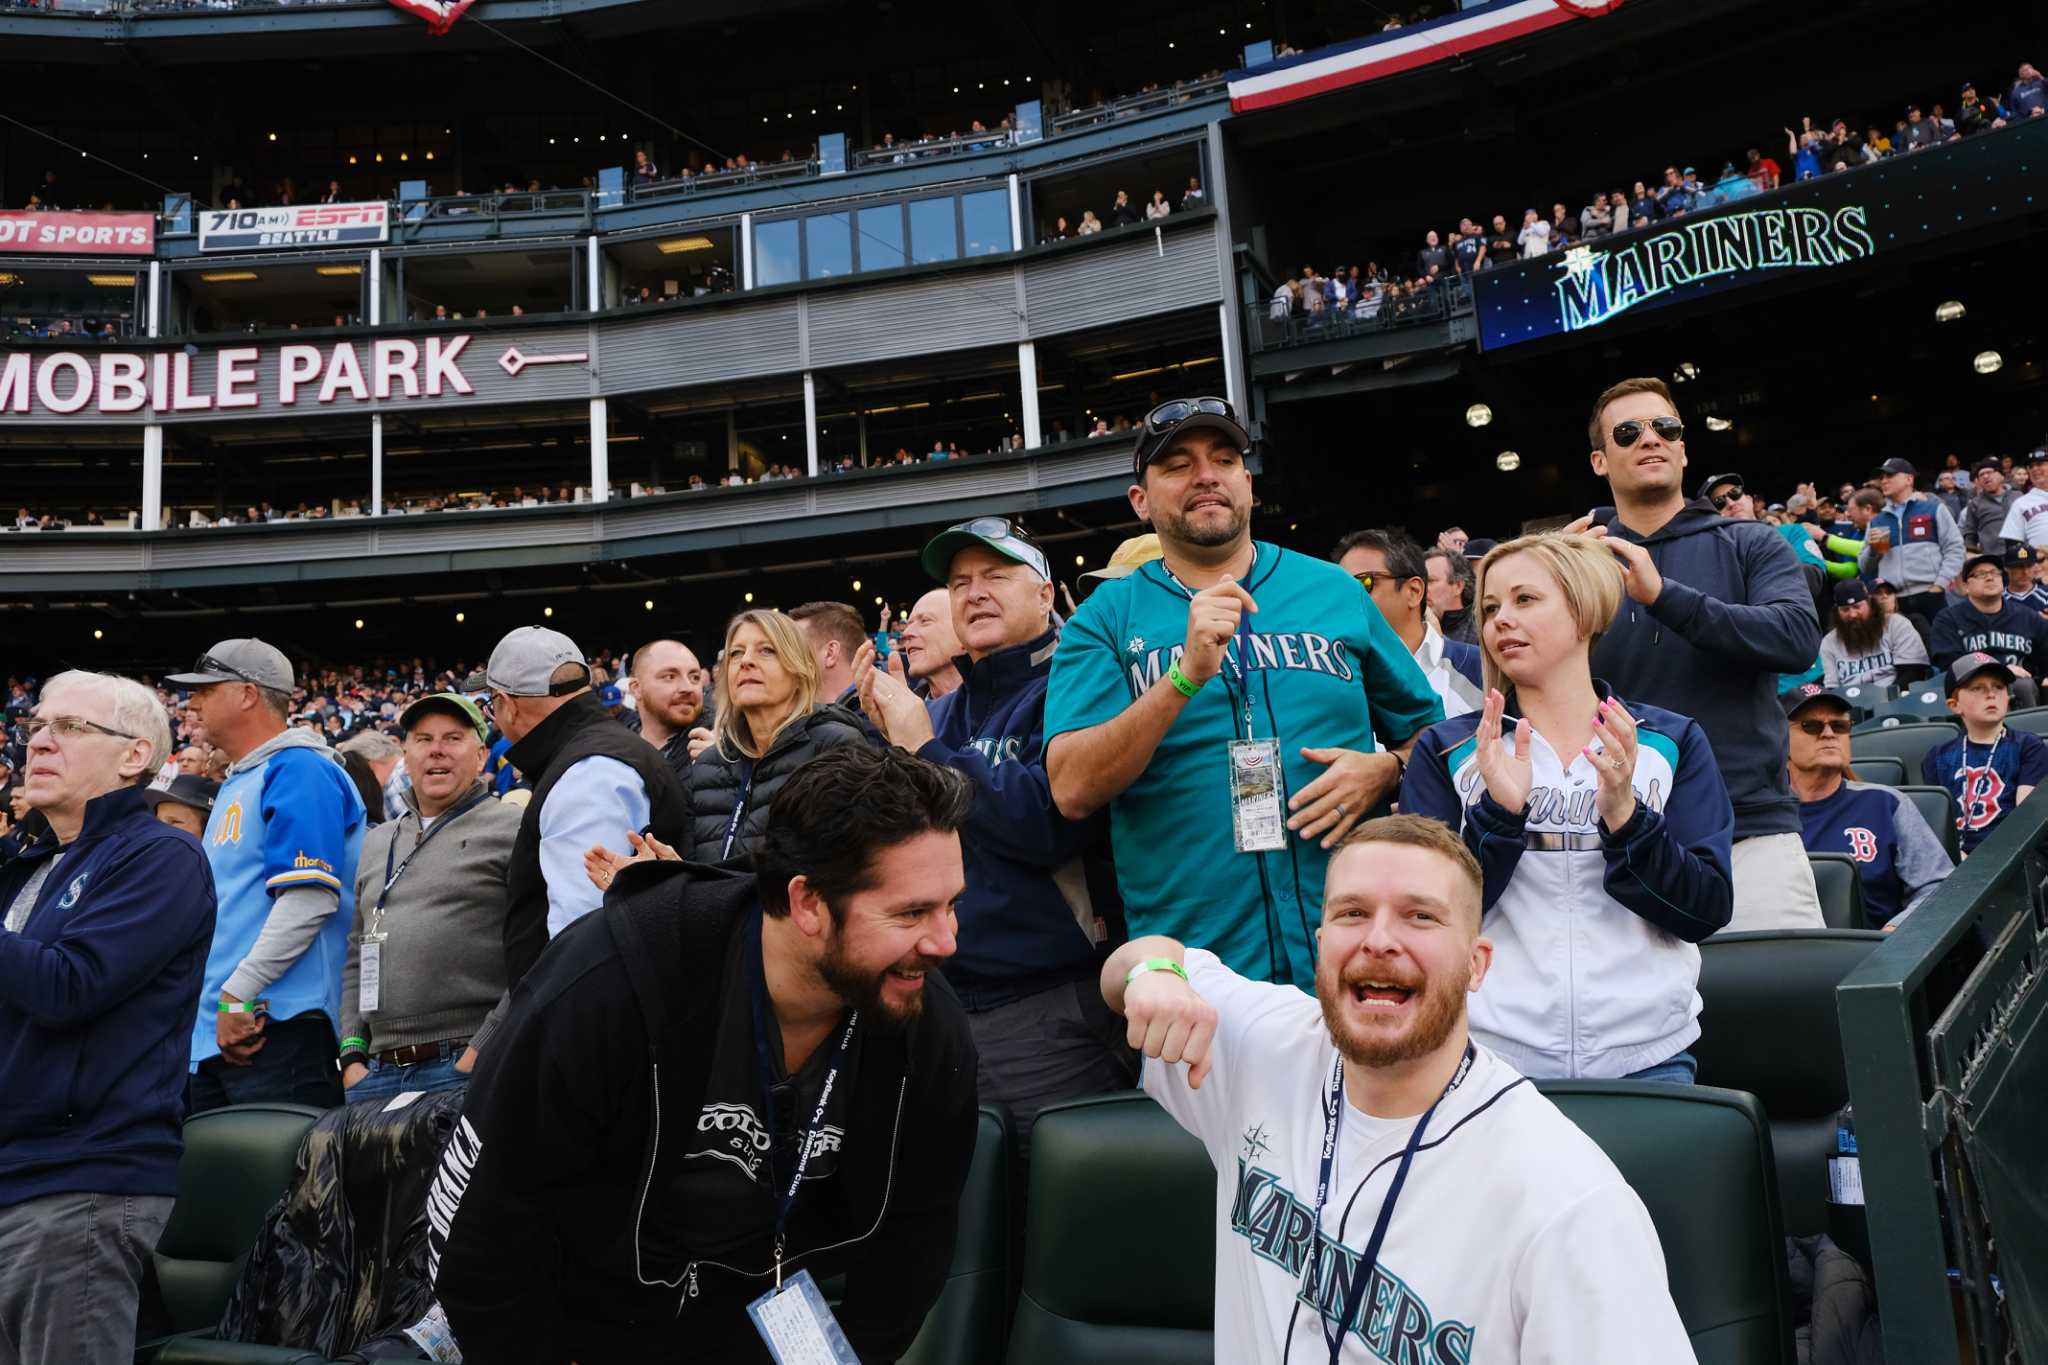 Seattle Mariners announce $5 value games for 2020 MLB season